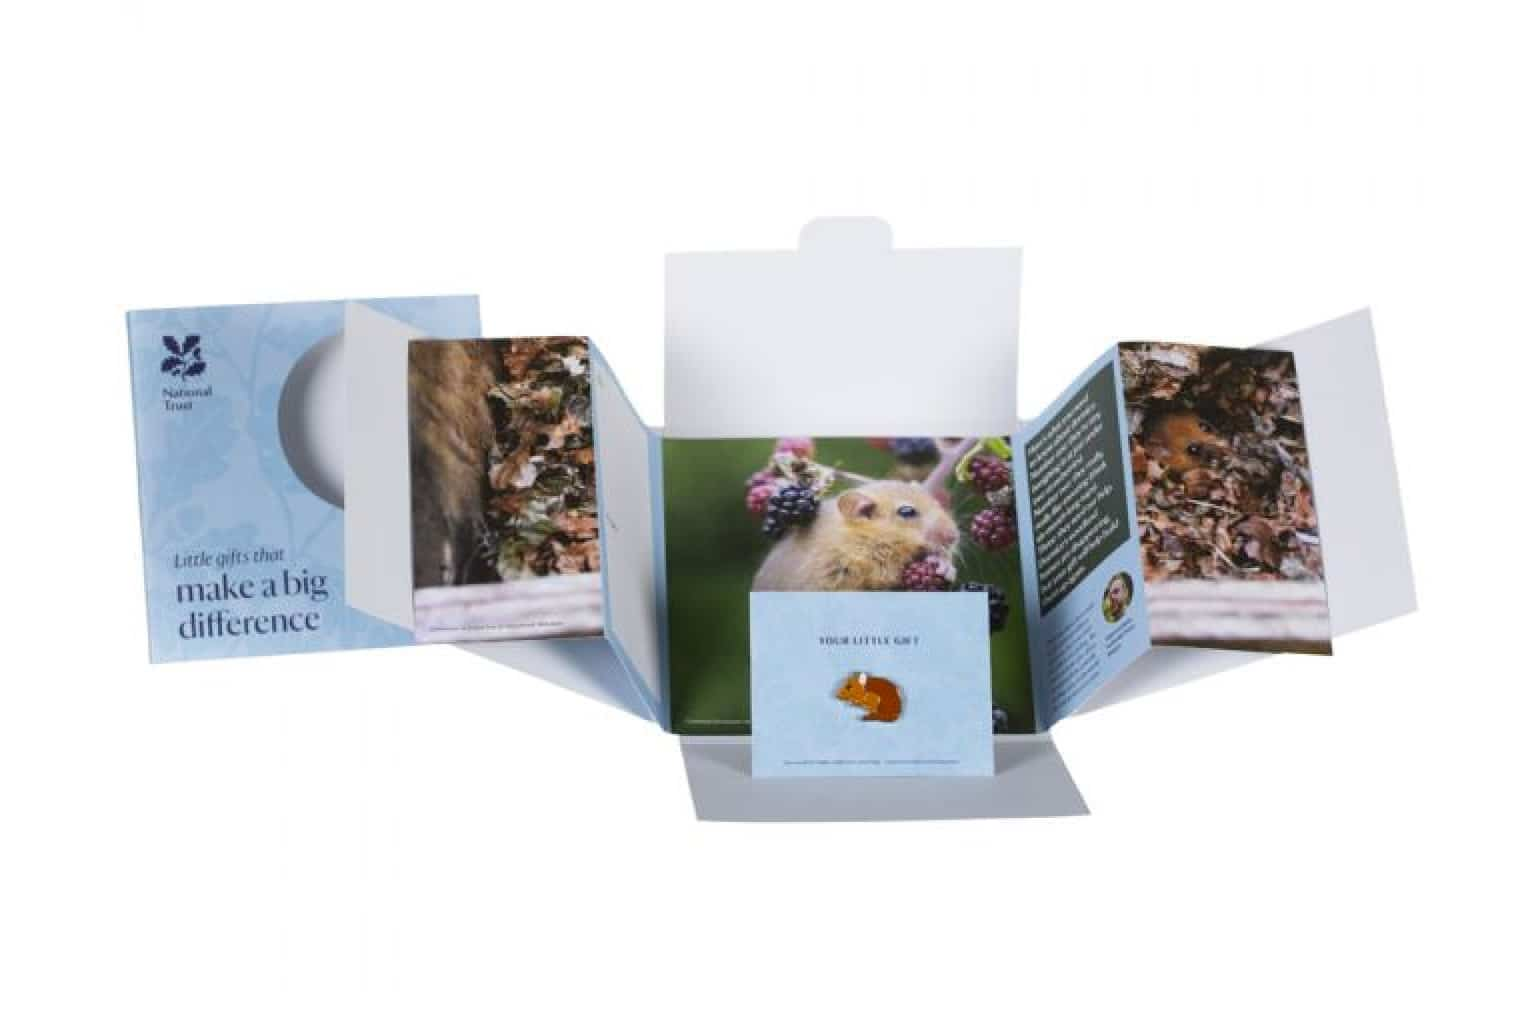 Small Wonder Gift, Dormouse